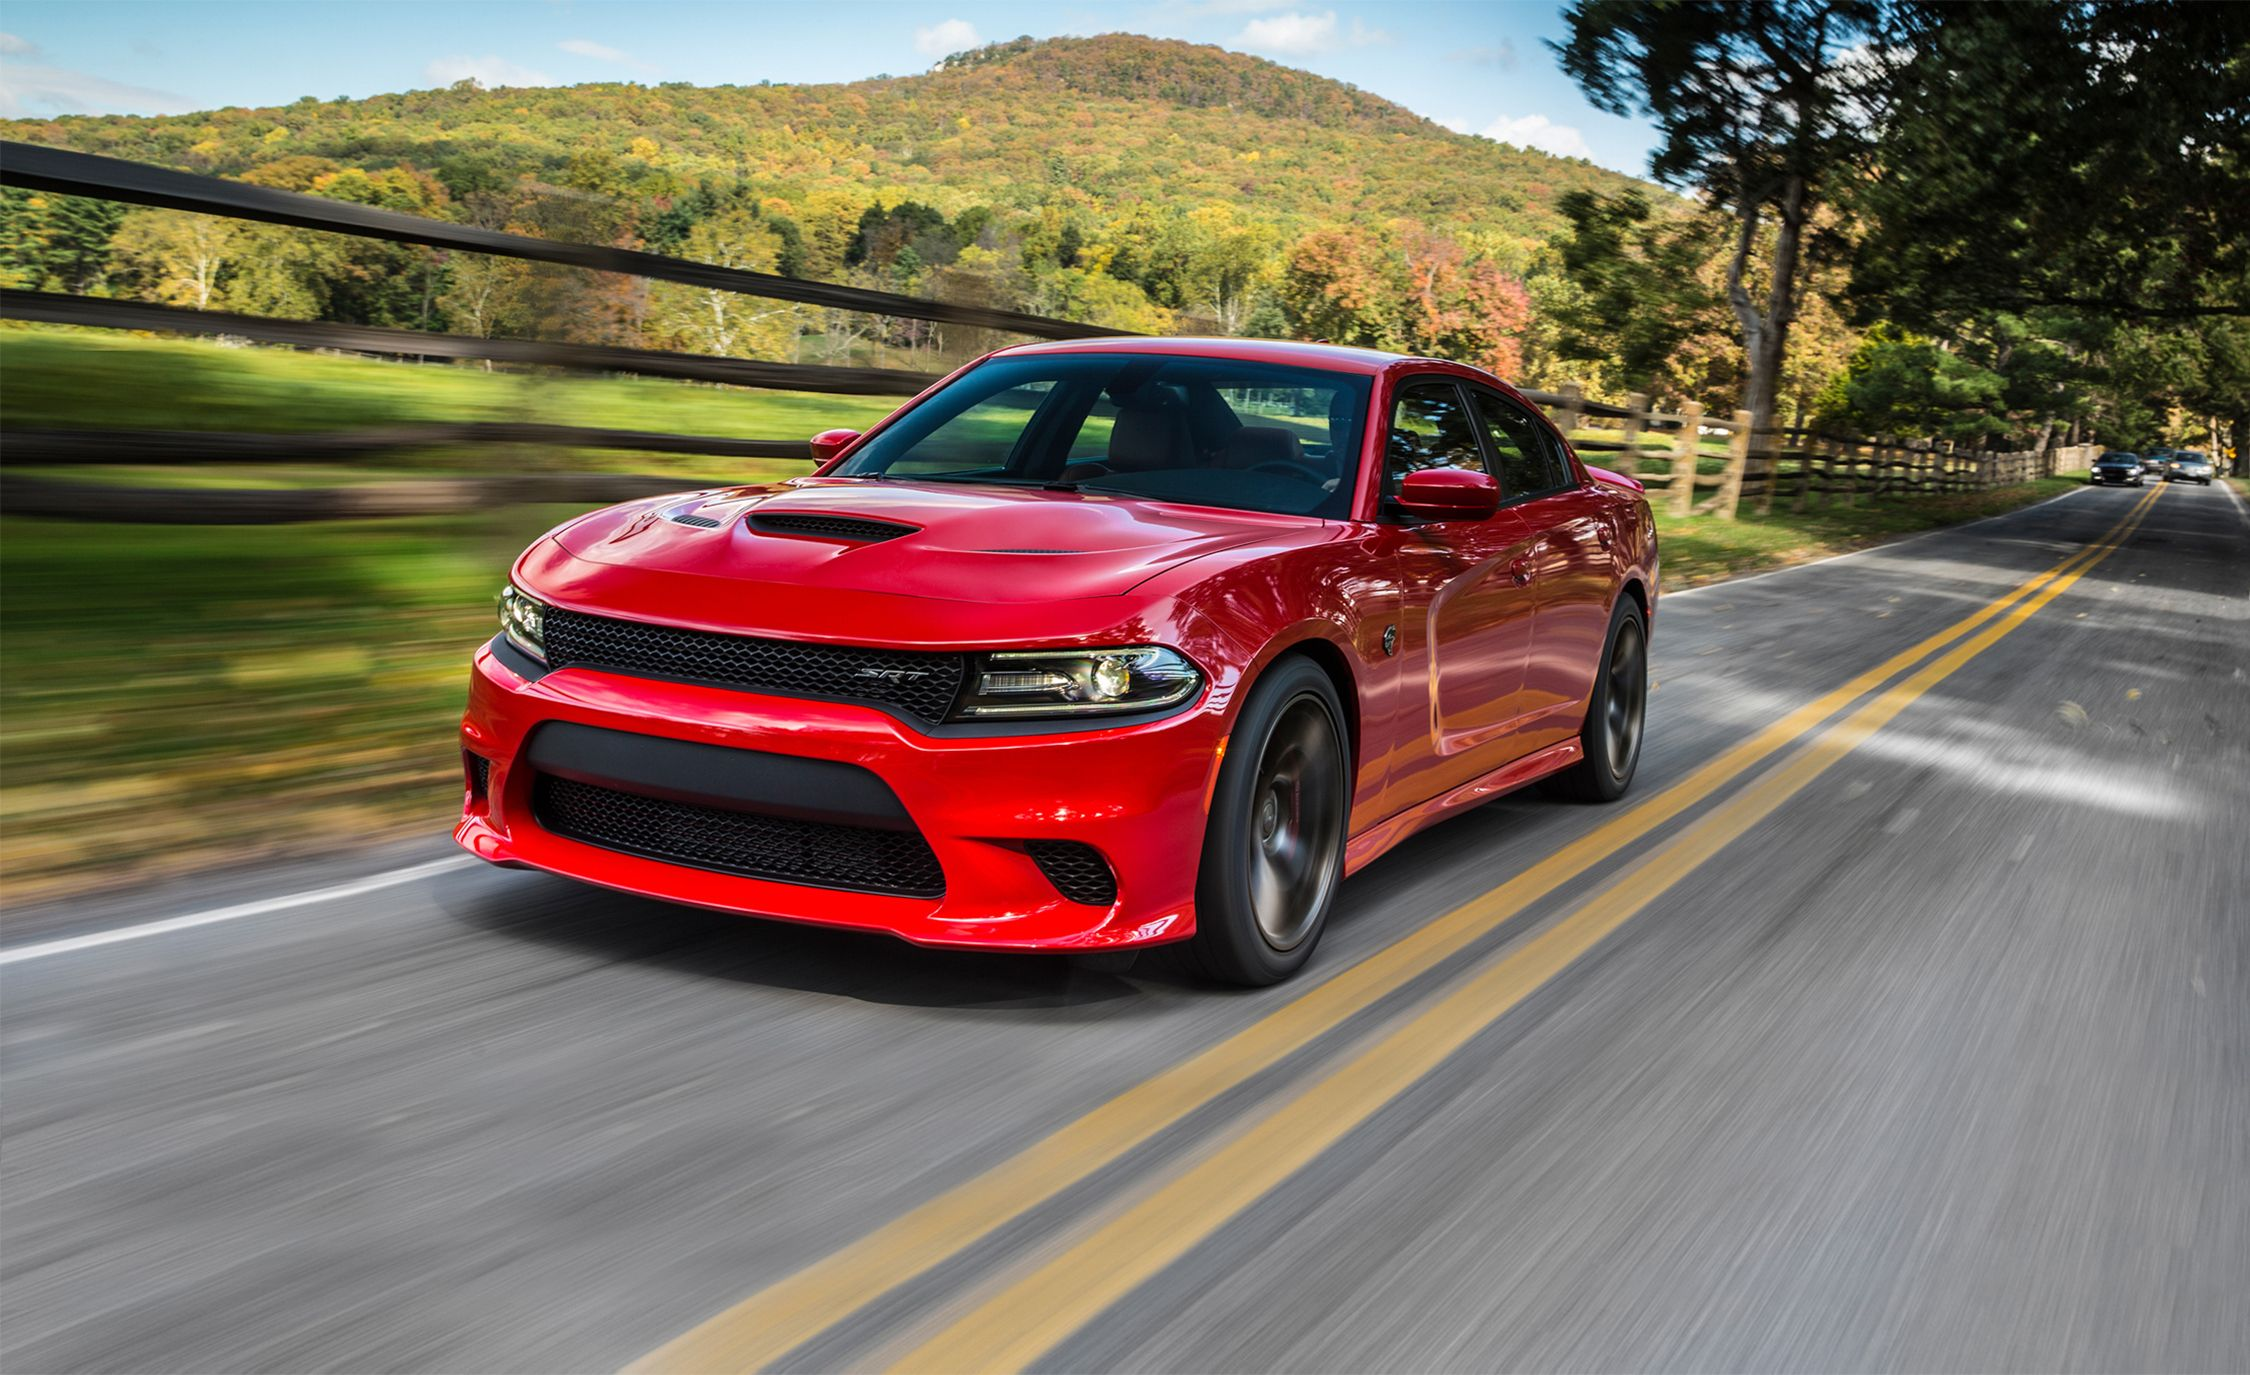 2017 Dodge Charger >> 2017 Dodge Charger Srt Hellcat Review Car And Driver